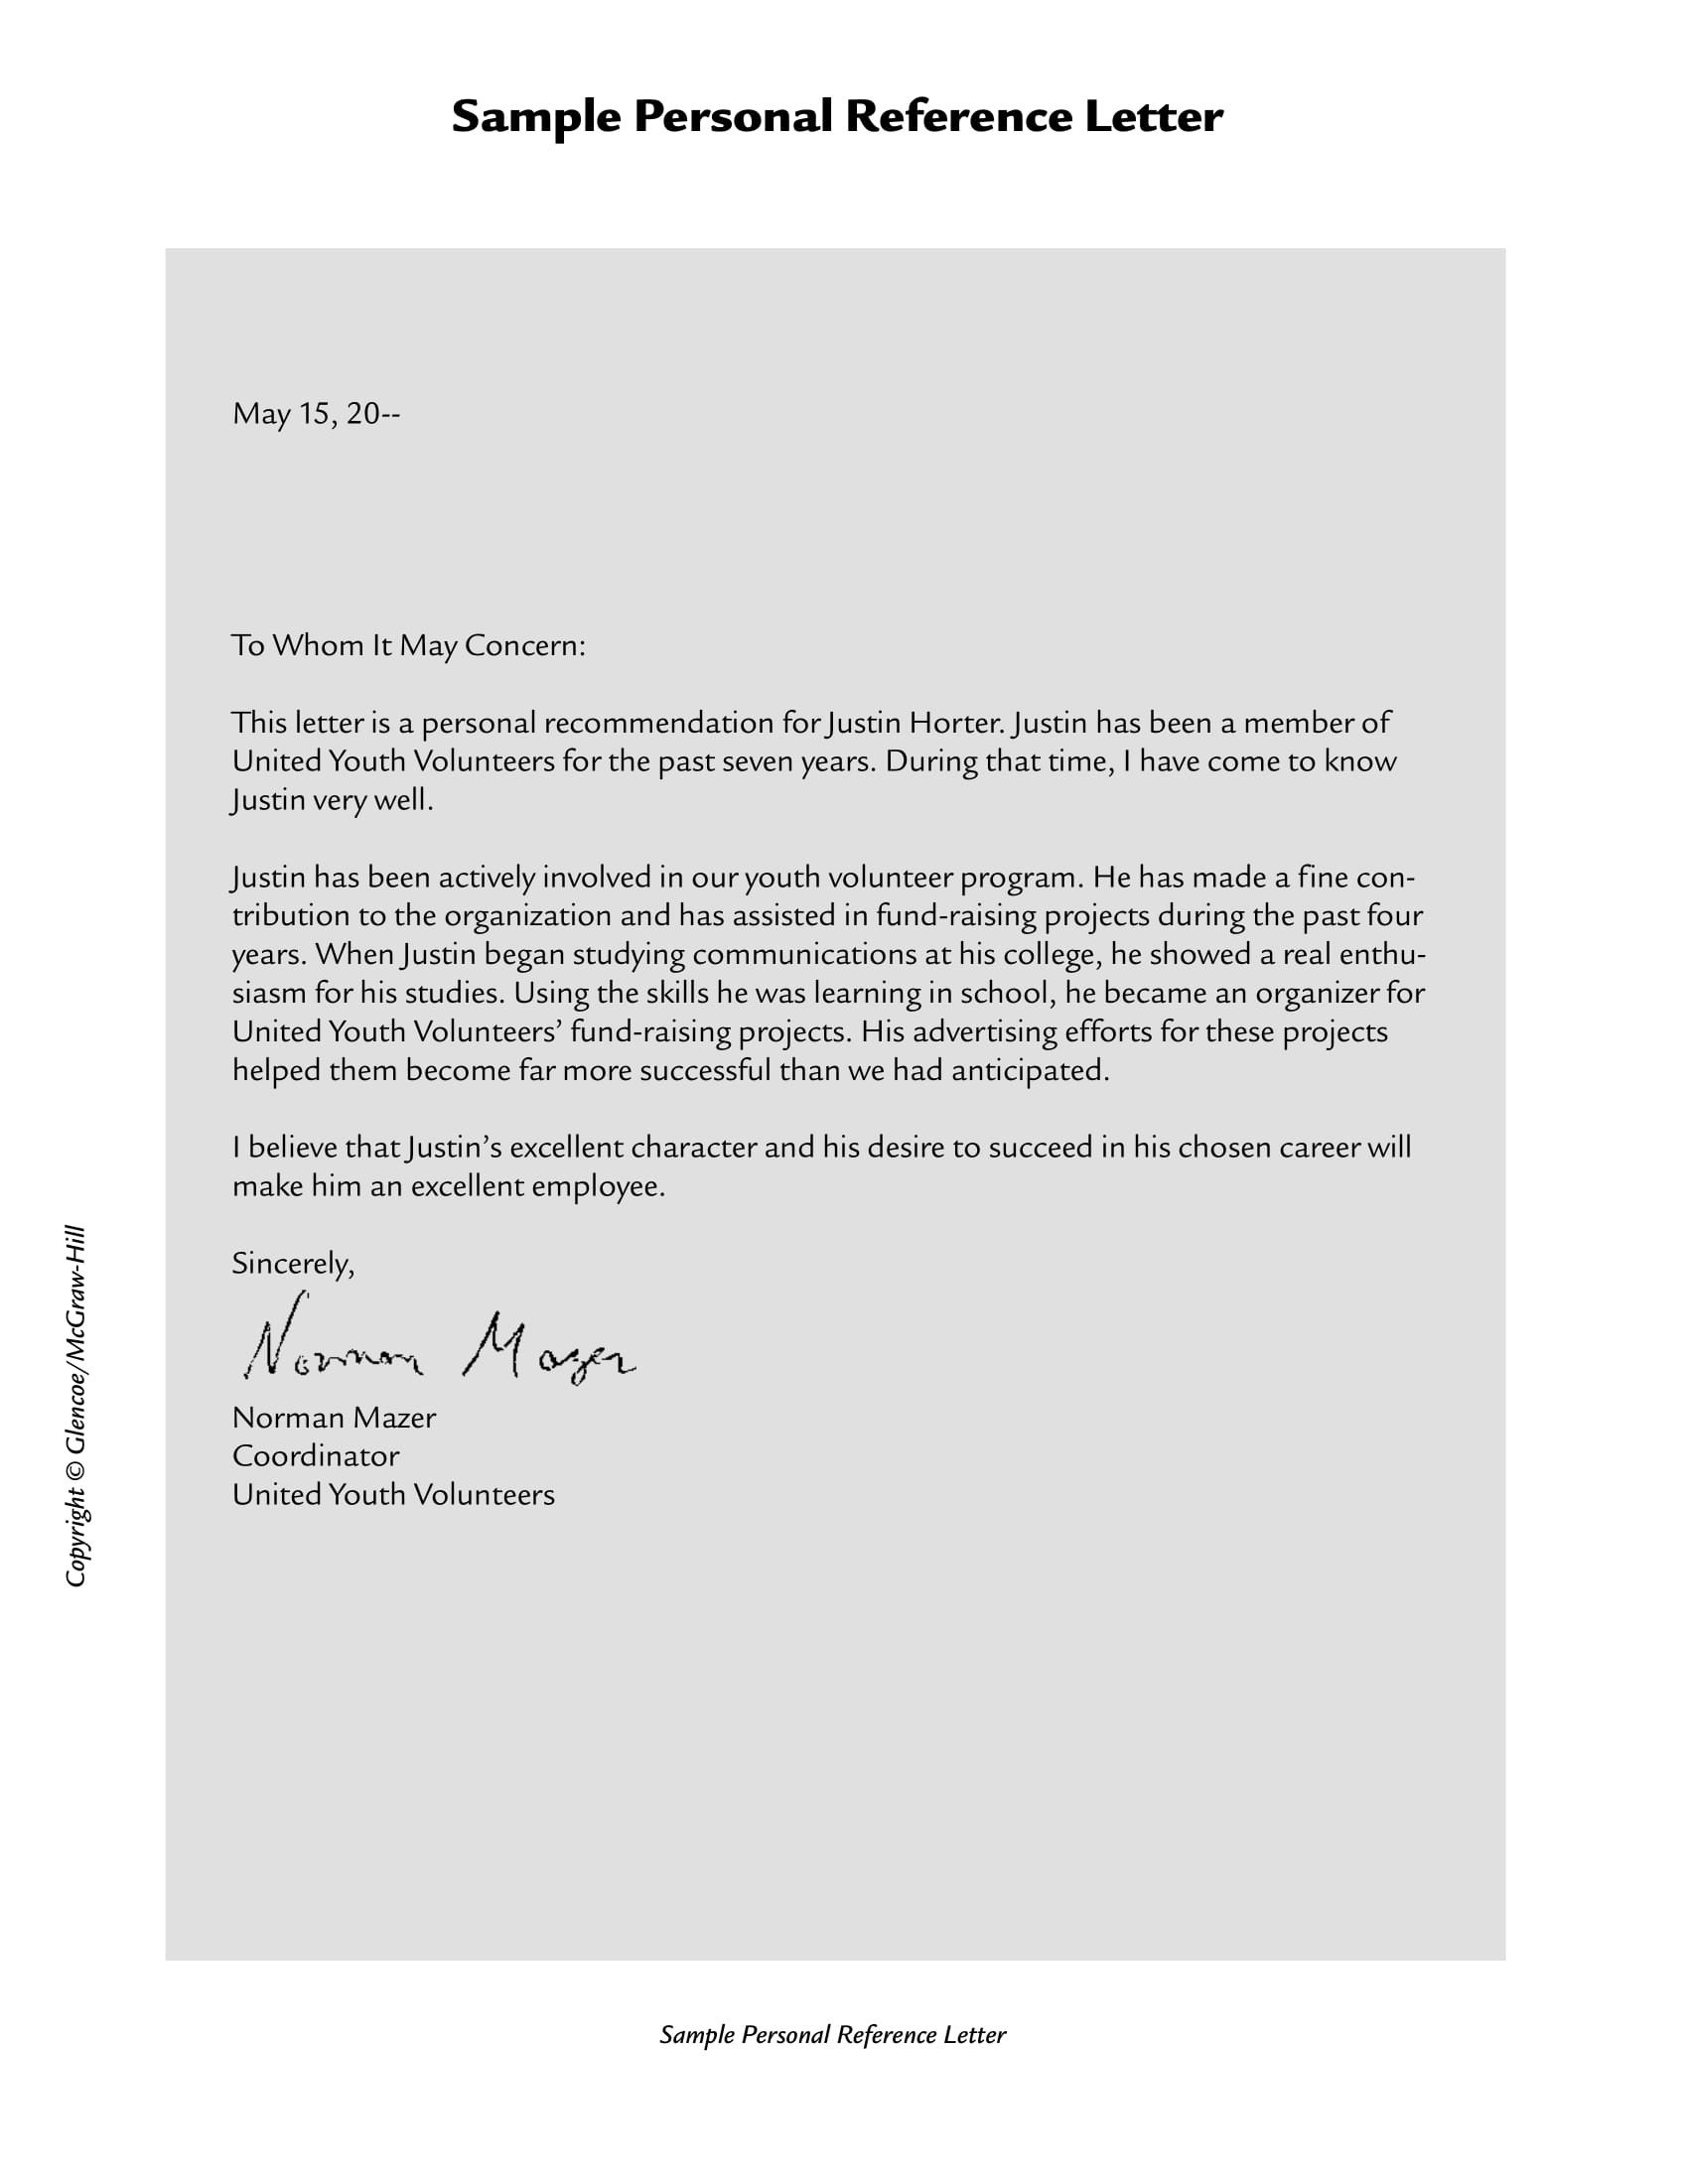 Personal Recommendation Letter Template 10 Personal Re Mendation Letter Examples Pdf Word